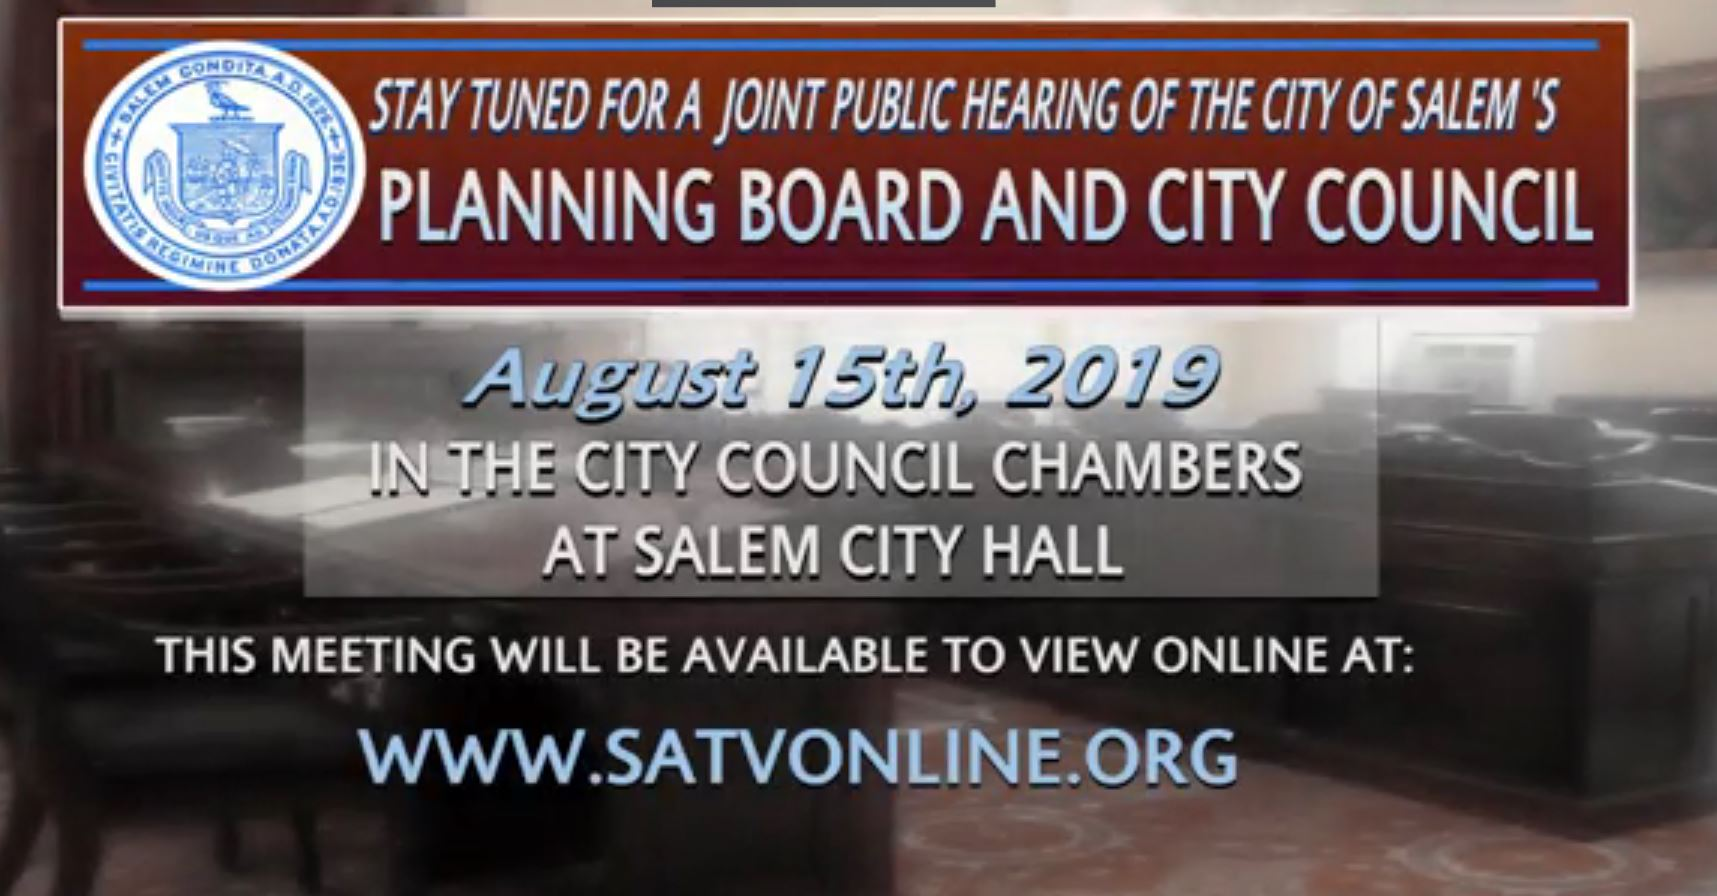 SATV Recording of August 15 Joint Public Hearing